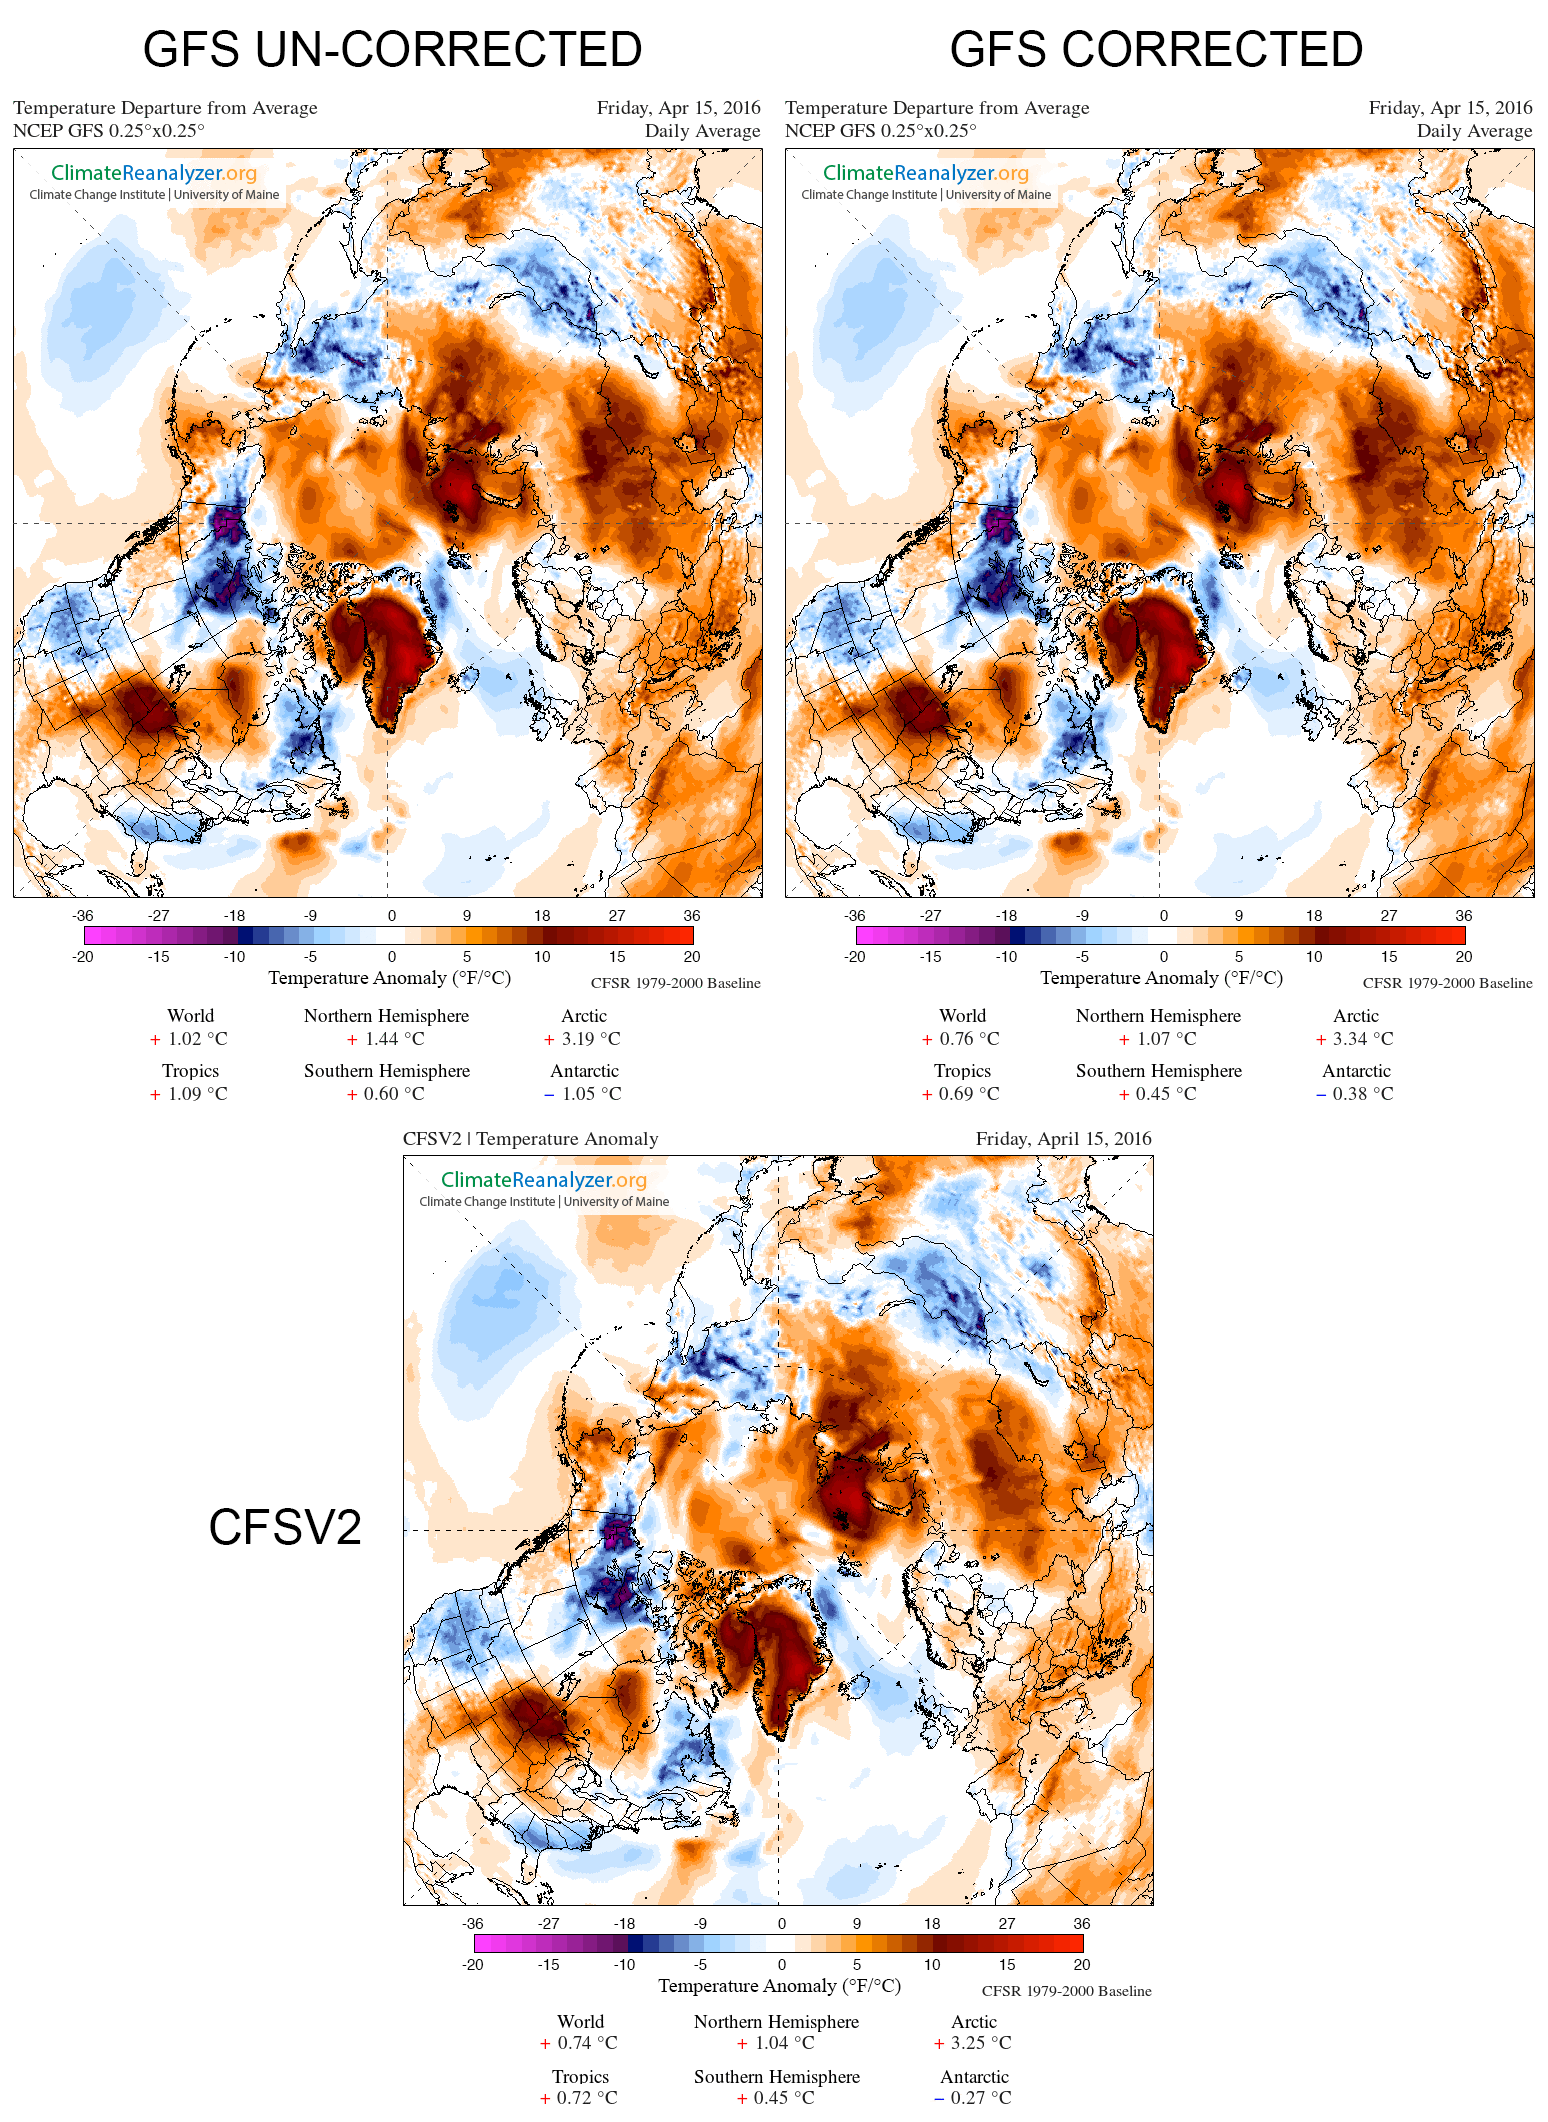 A Timeseries Plot Showing The Bias Corrections For Each Region Is Shown Here Temperature Anomaly Maps Showing Uncorrected And Corrected Gfs Vs